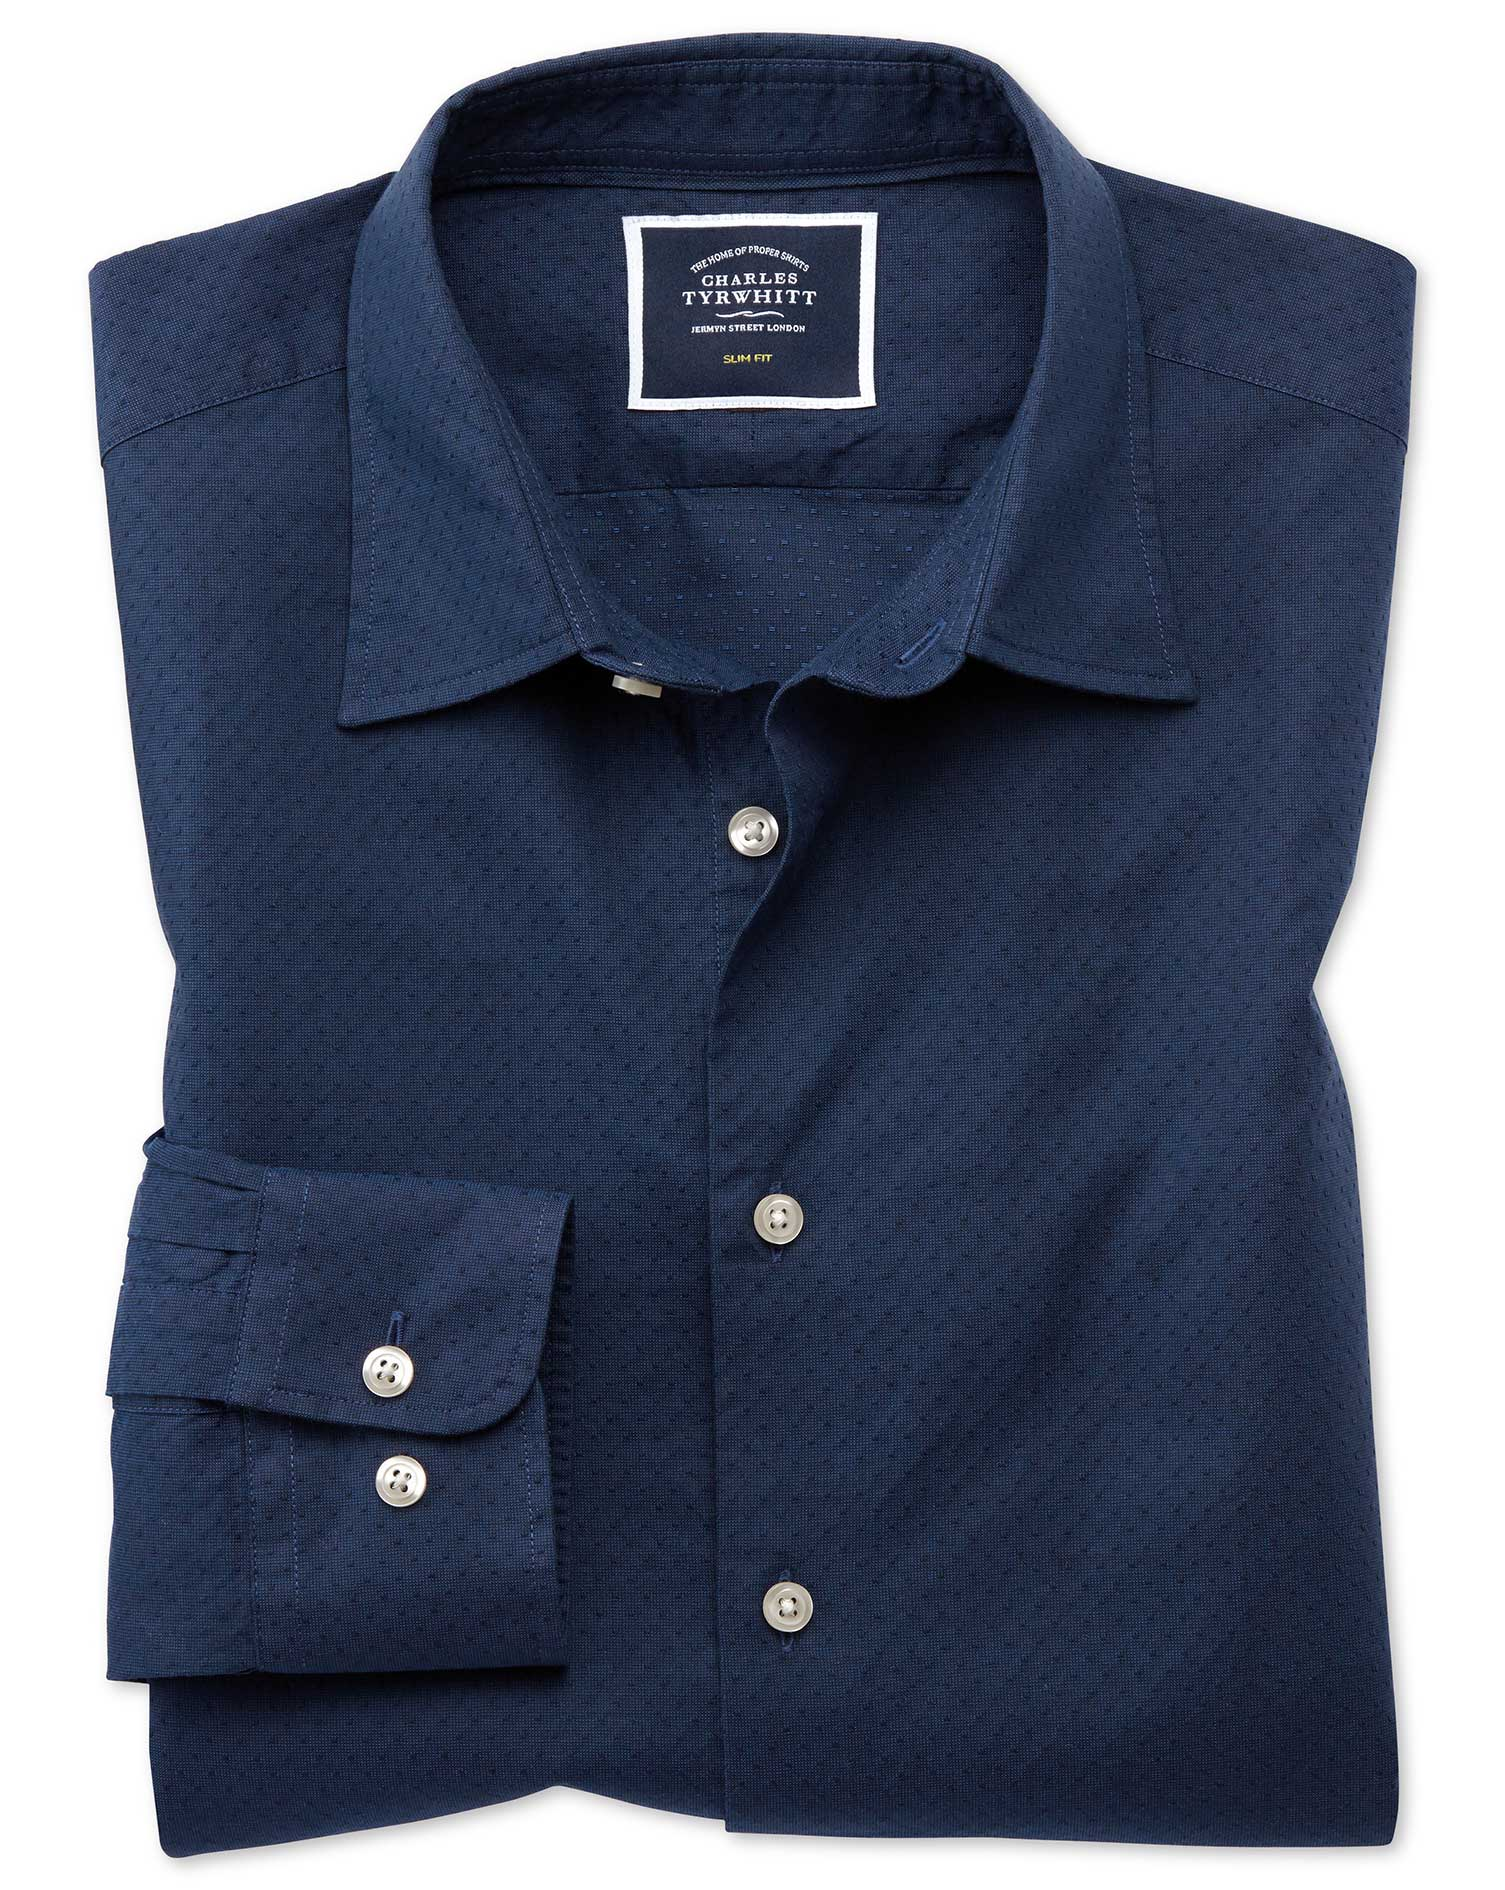 Slim Fit Dark Blue Spot Soft Texture Cotton Shirt Single Cuff Size Large by Charles Tyrwhitt